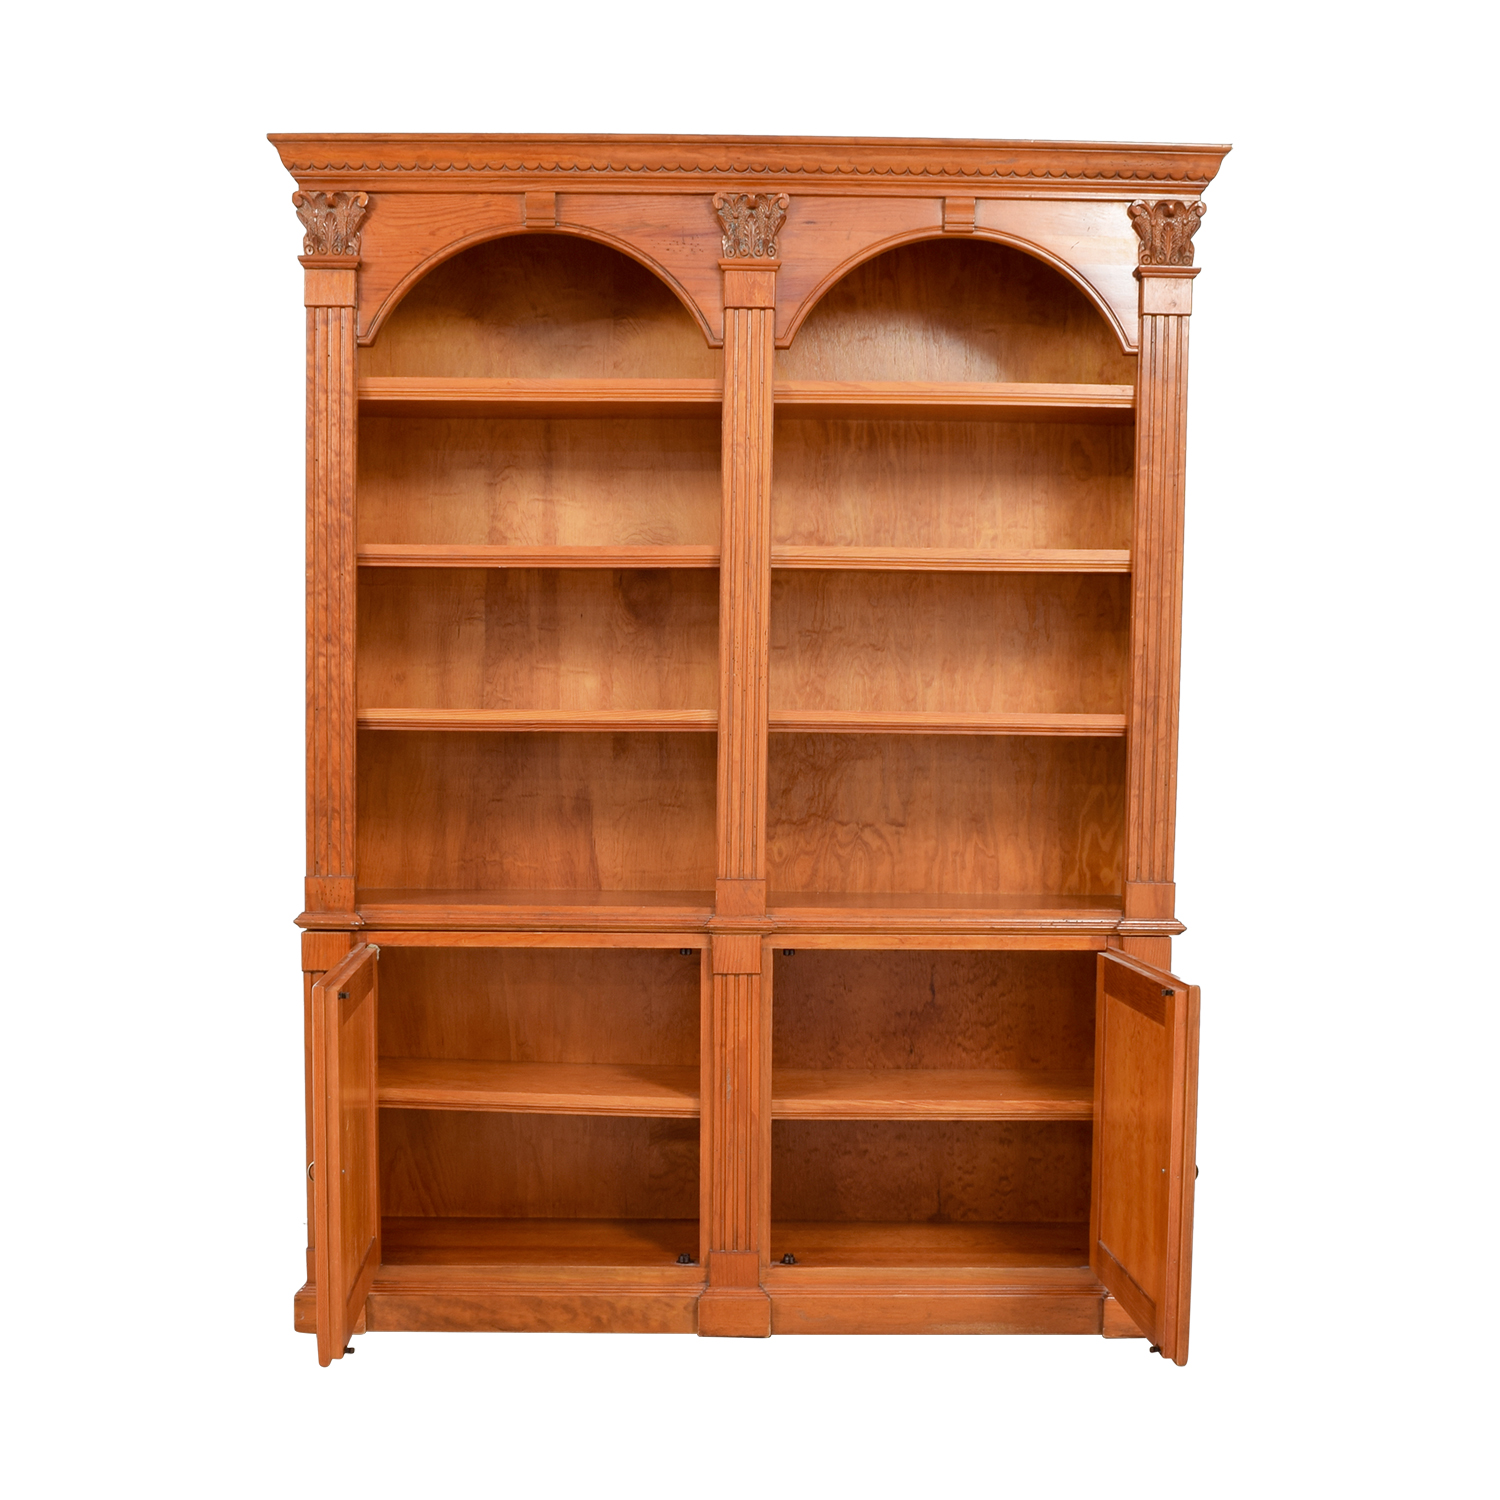 buy Hamilton Heritage Double Bookcase with Storage Hamilton Heritage Bookcases & Shelving